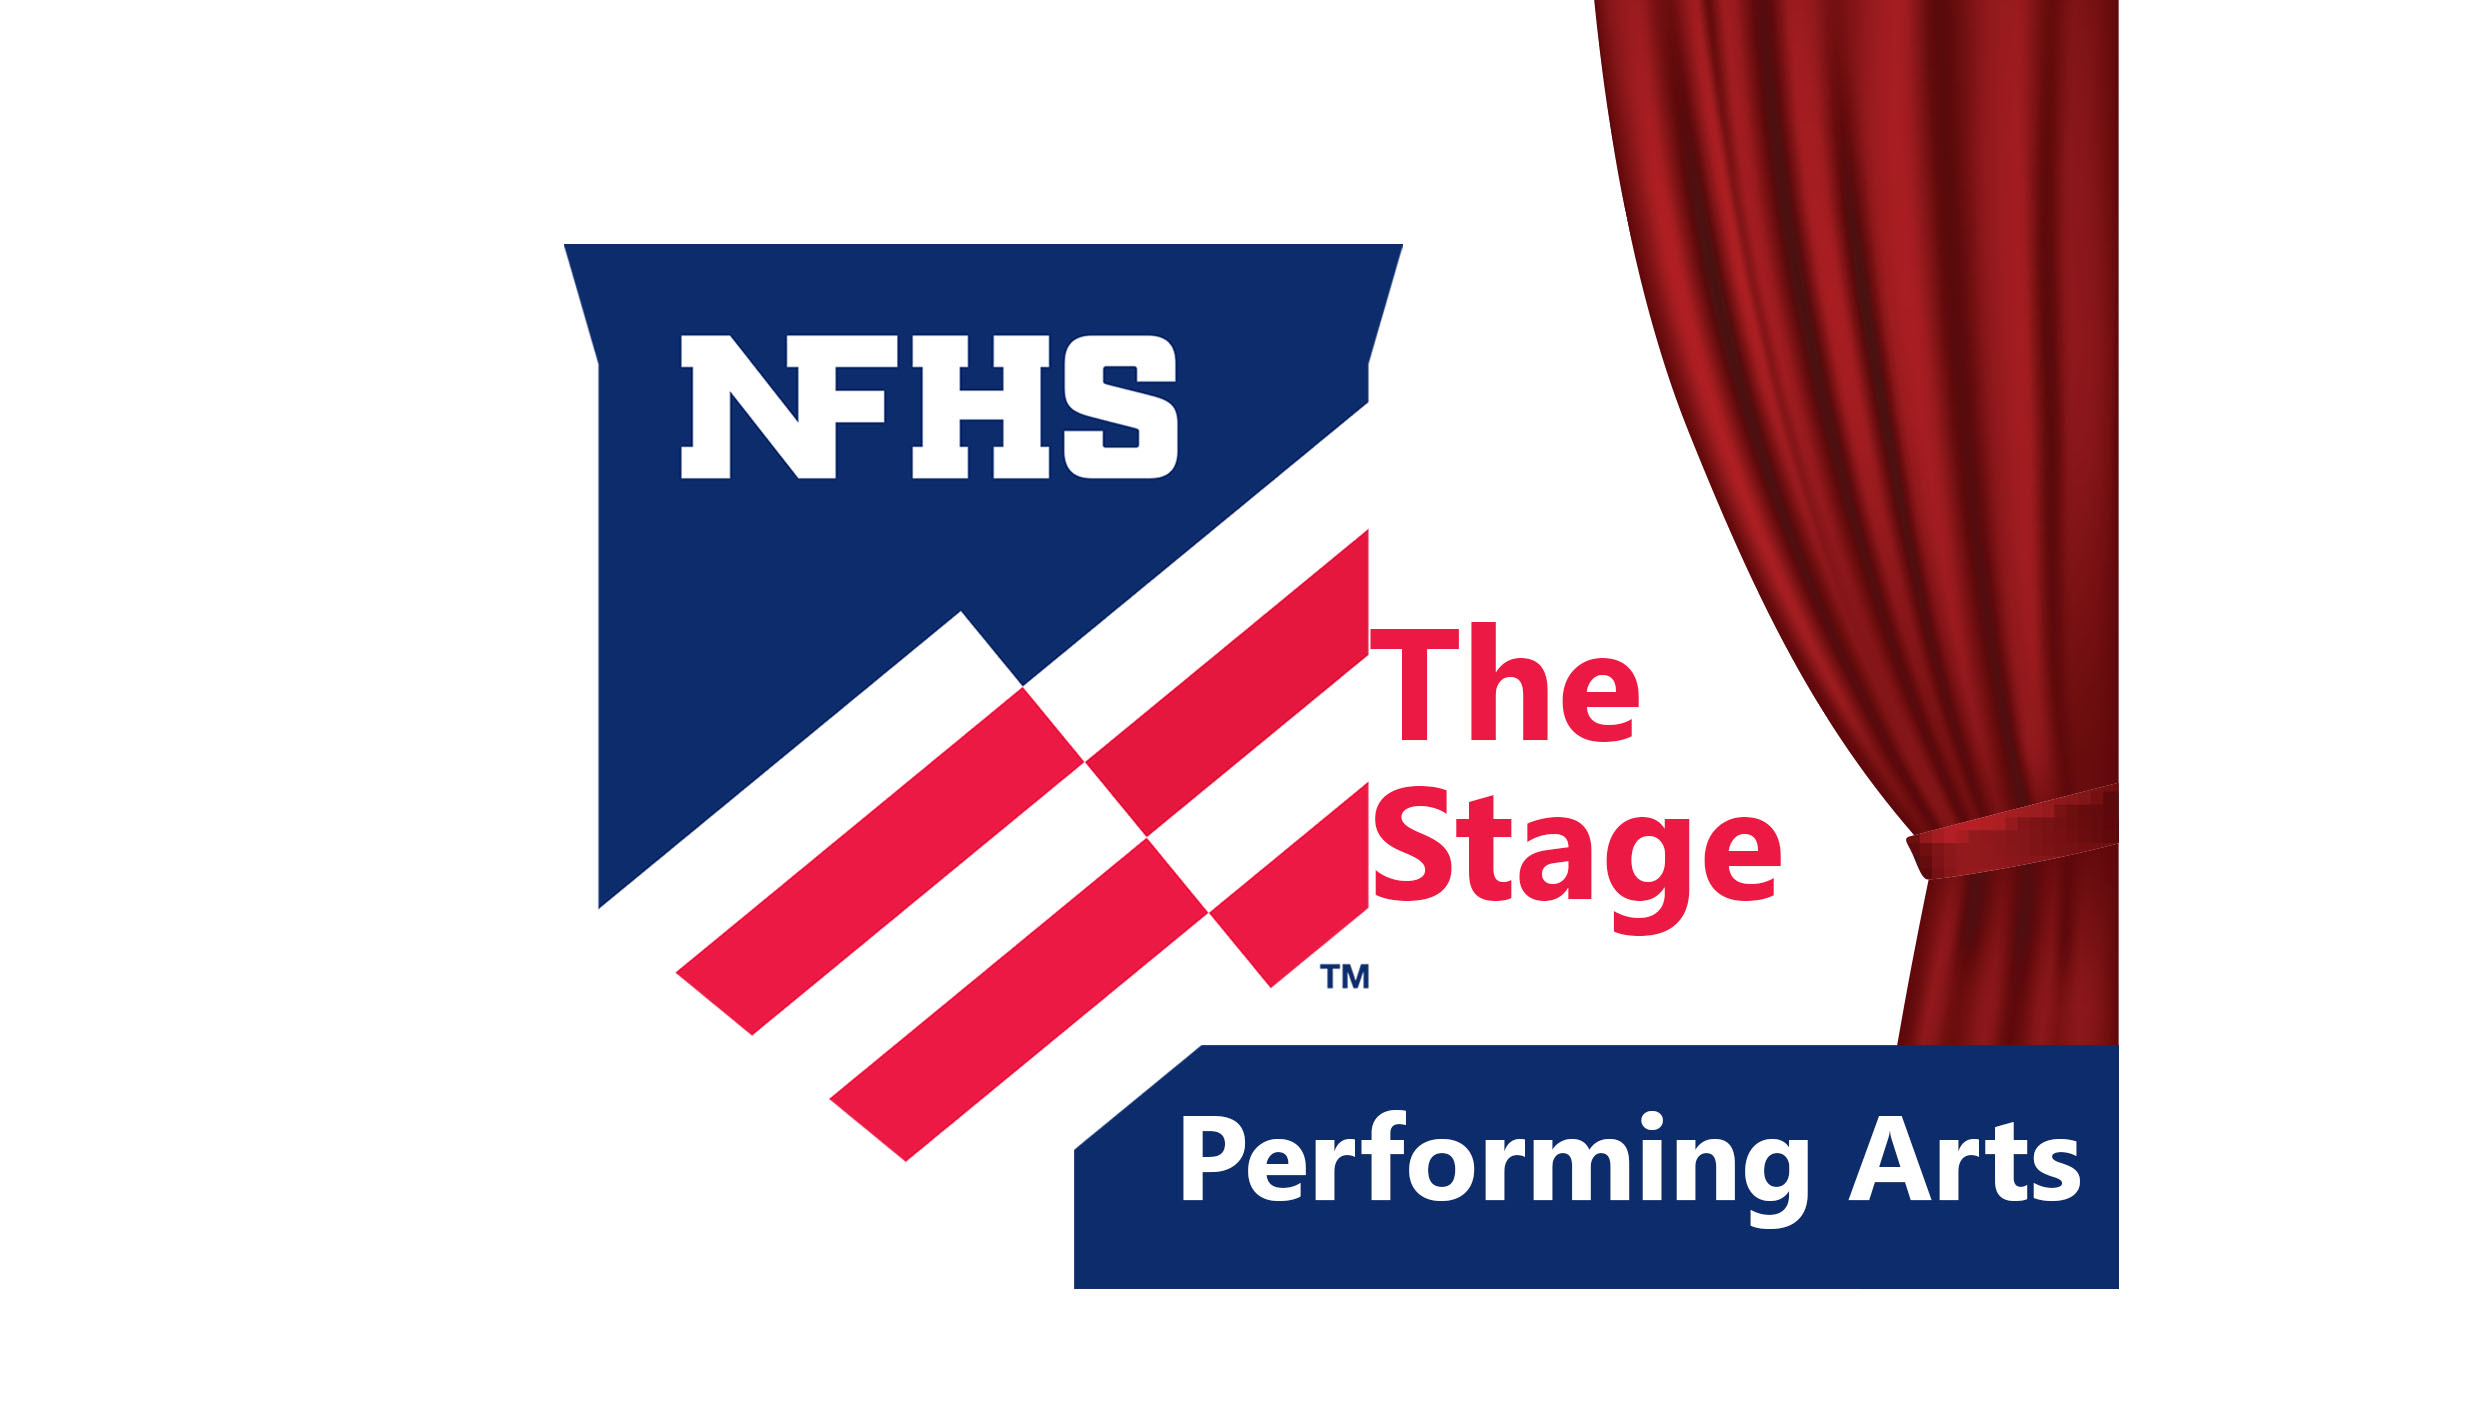 The Stage - Official Performing Arts Podcast of the NFHS